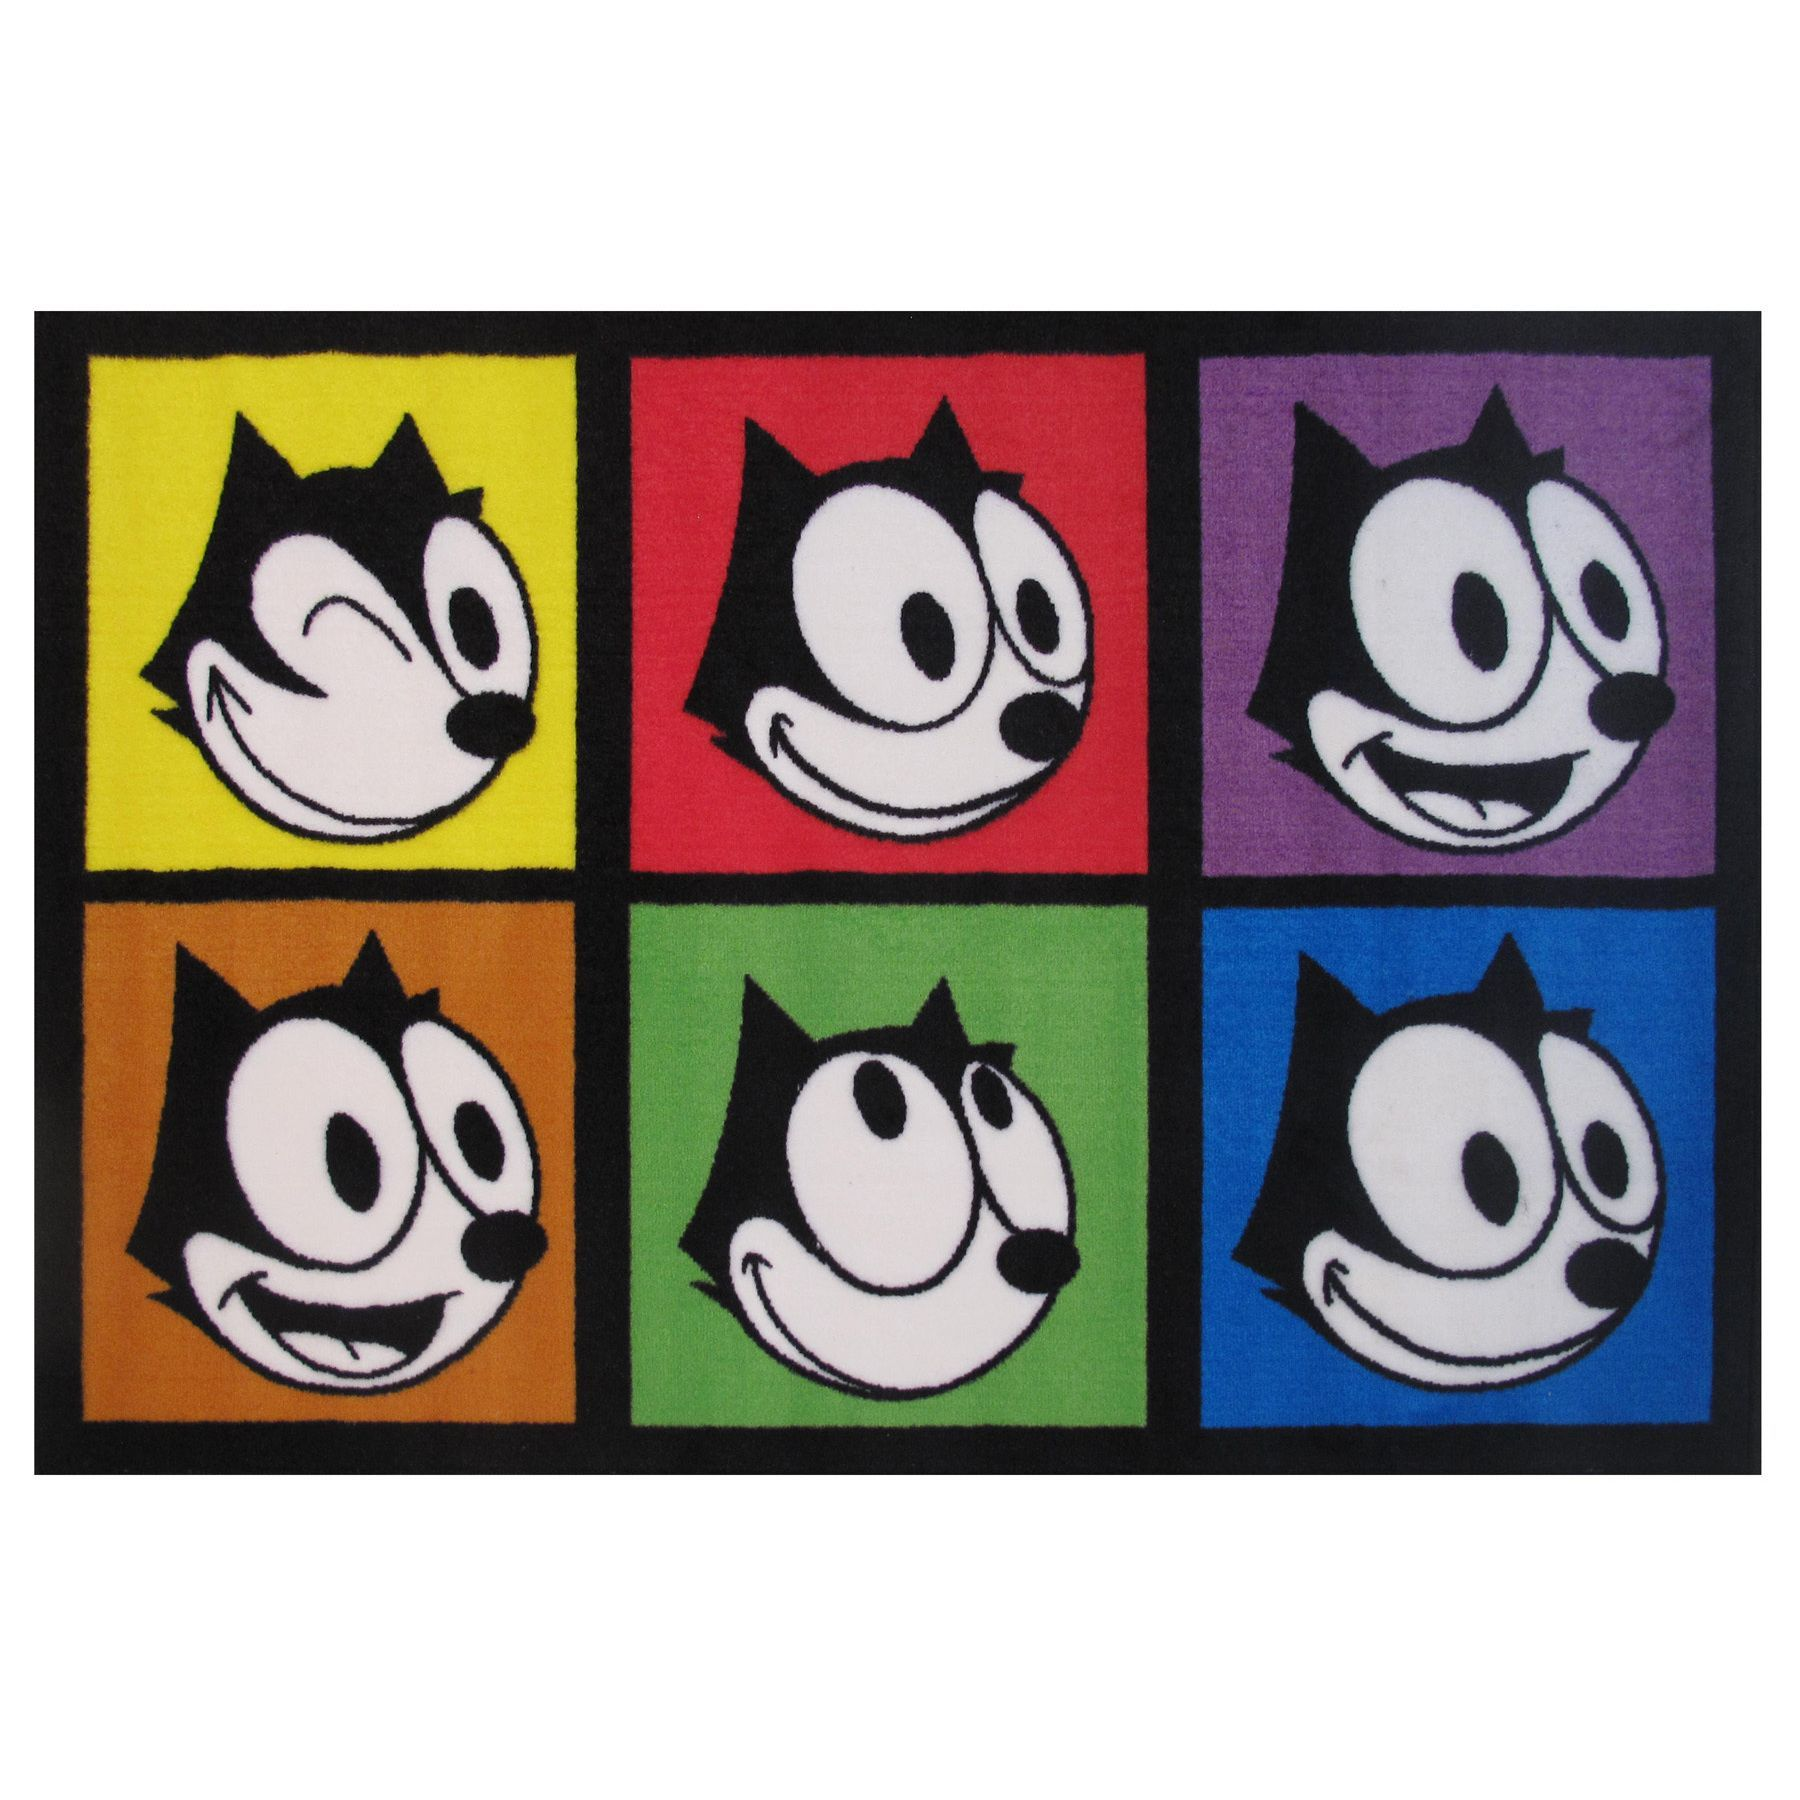 Adorn Your Kid's Space With A Fun And Whimsical Rug From